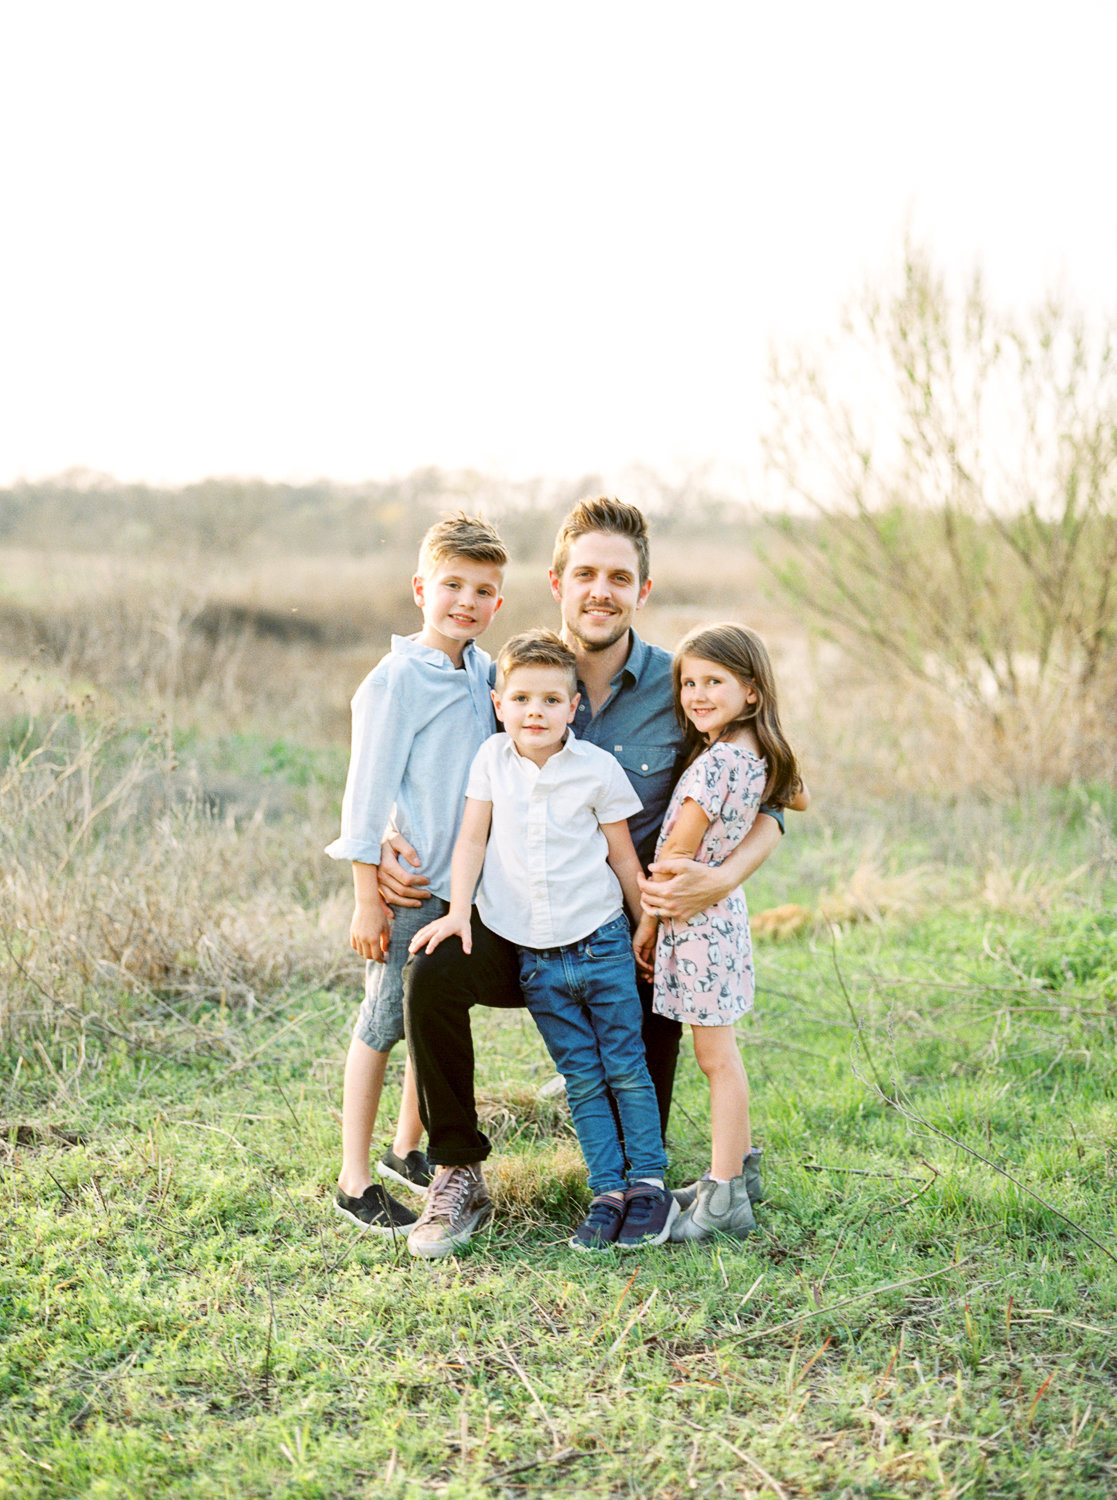 Tullos_ChelseaQWhitePhotography-6